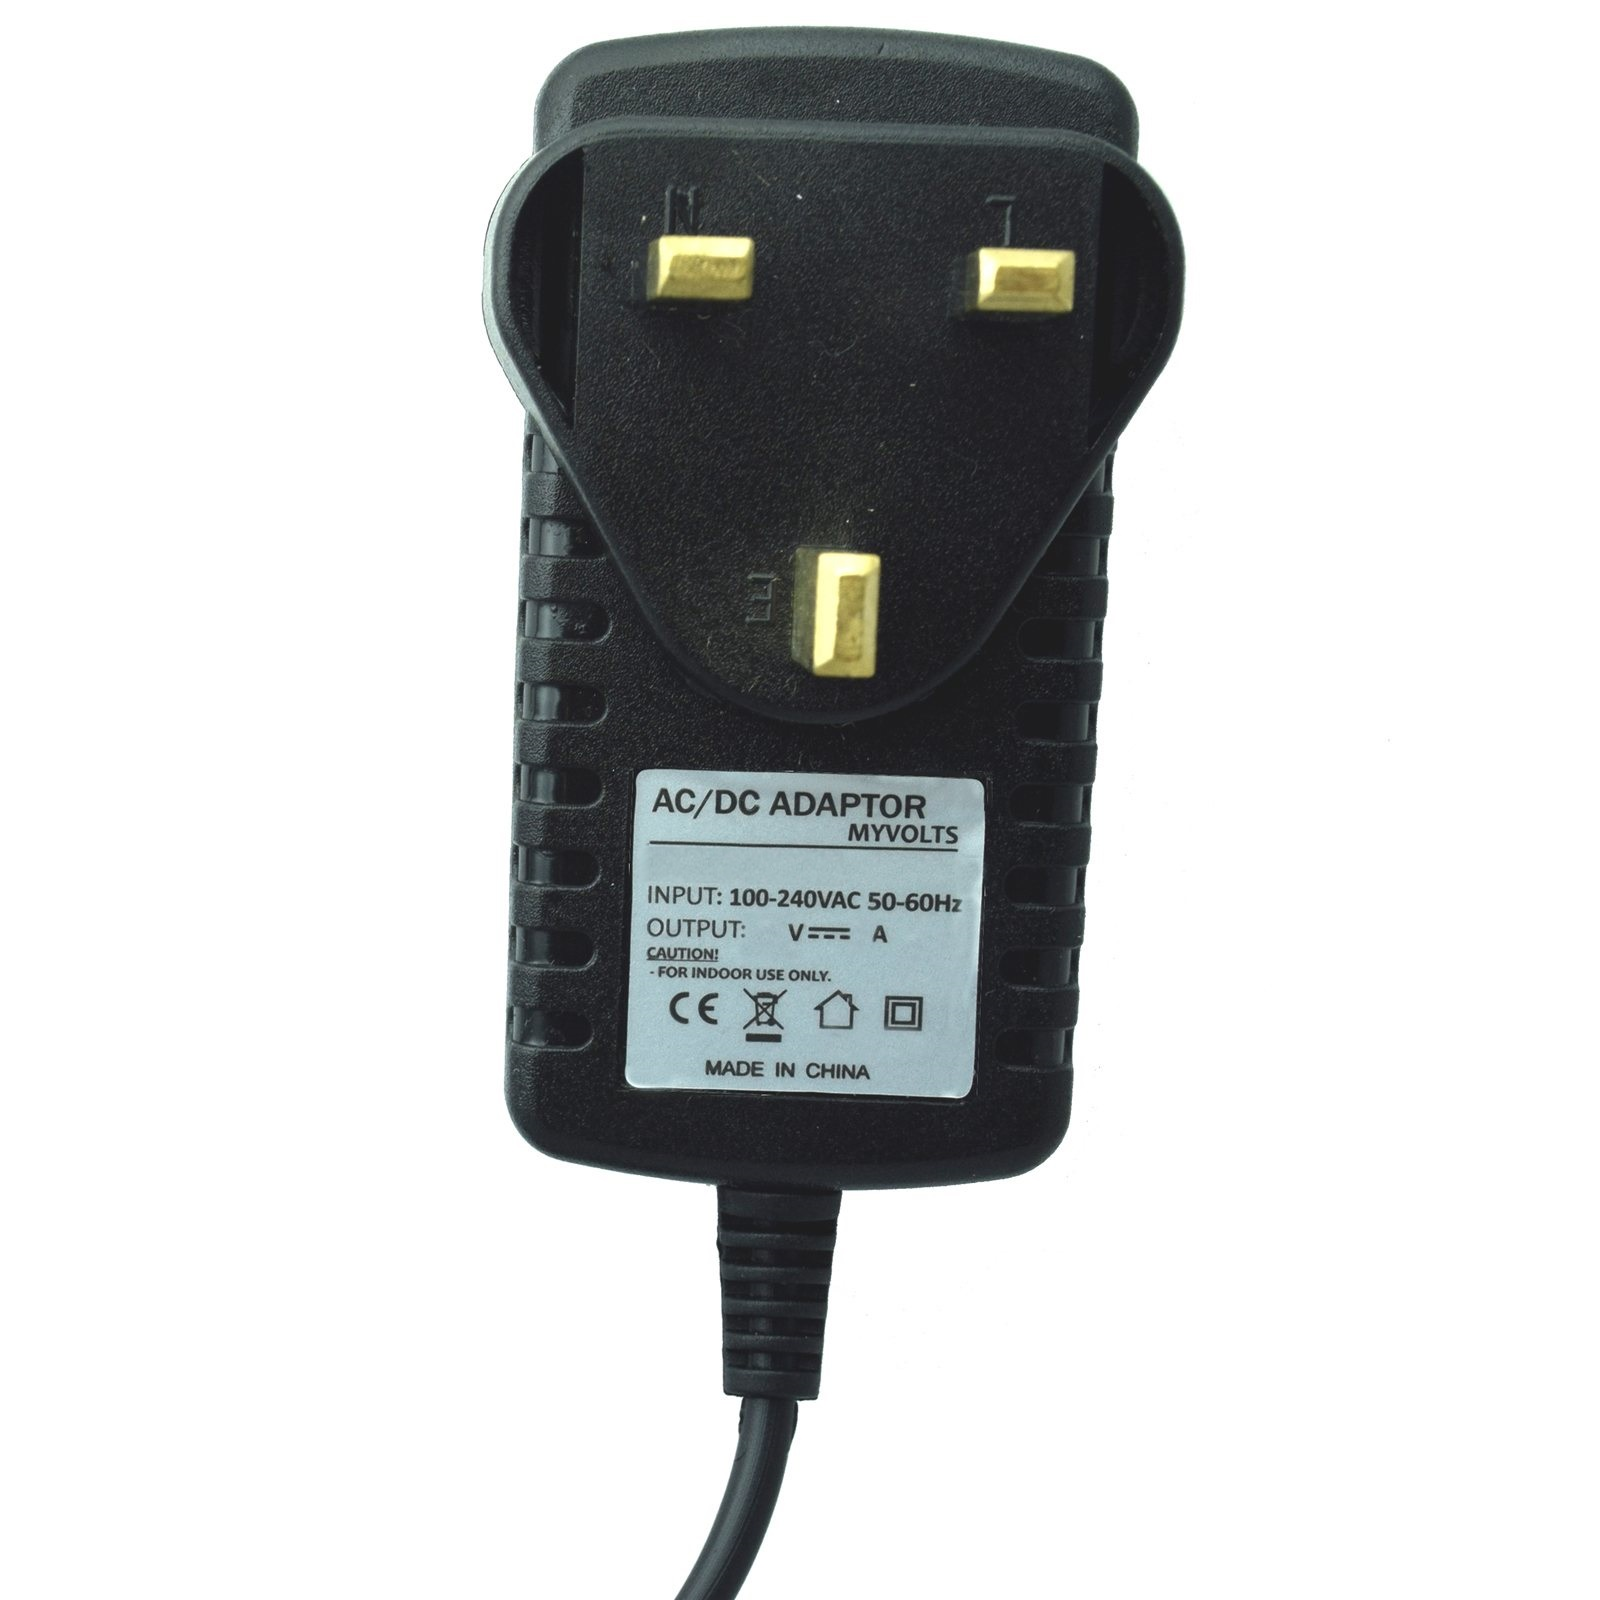 USB to 9V DC Power Cable Compatible with The Bastl Dude Mixer myVolts Ripcord